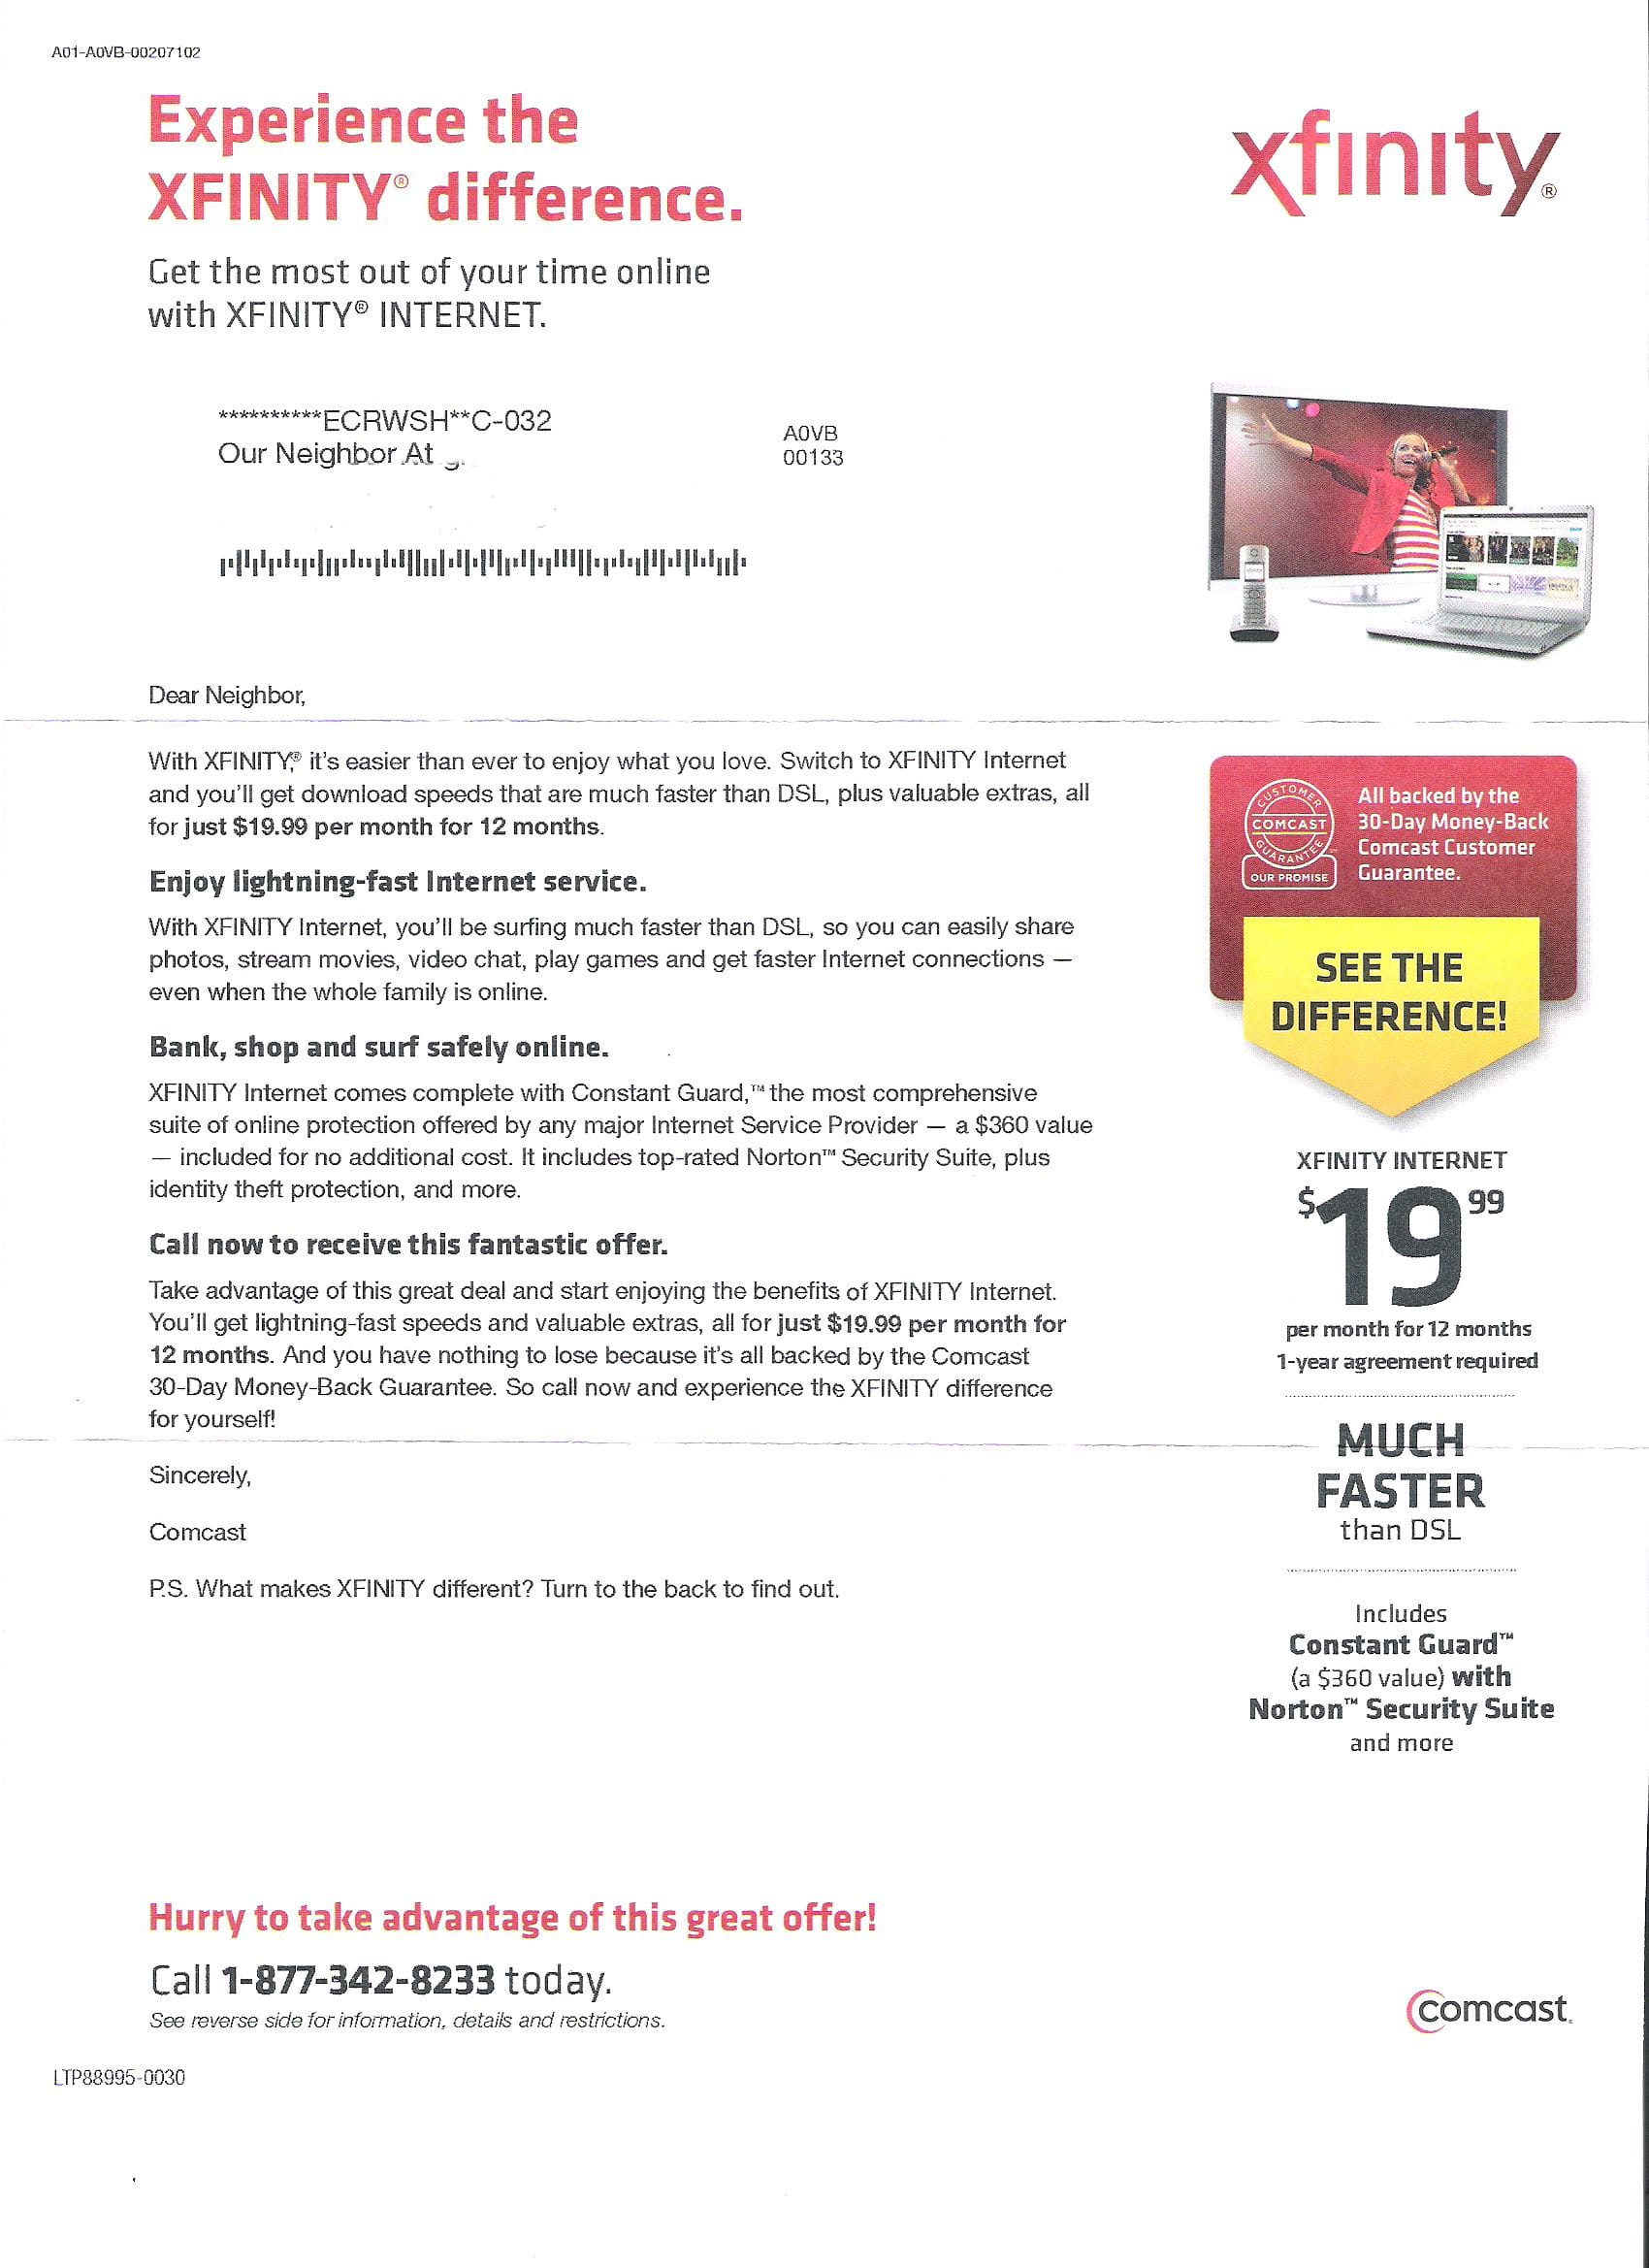 Ultimate Comcast / Infinity Internet deal- $19.99/Month for 1 year with no additional service required